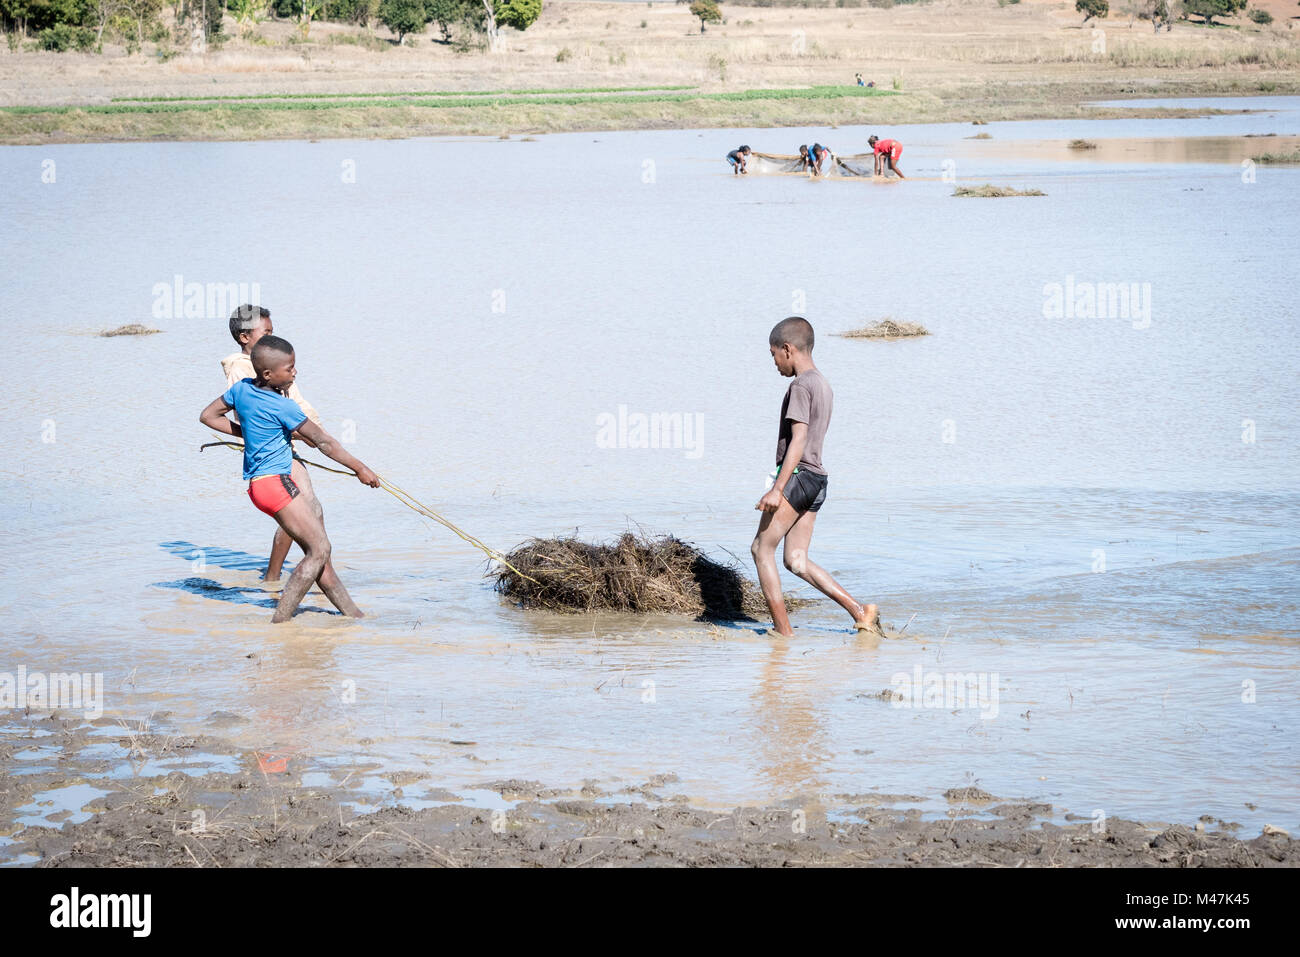 Children Fishing in Lake with Bales of Grass for a Net, Madagscar Stock Photo